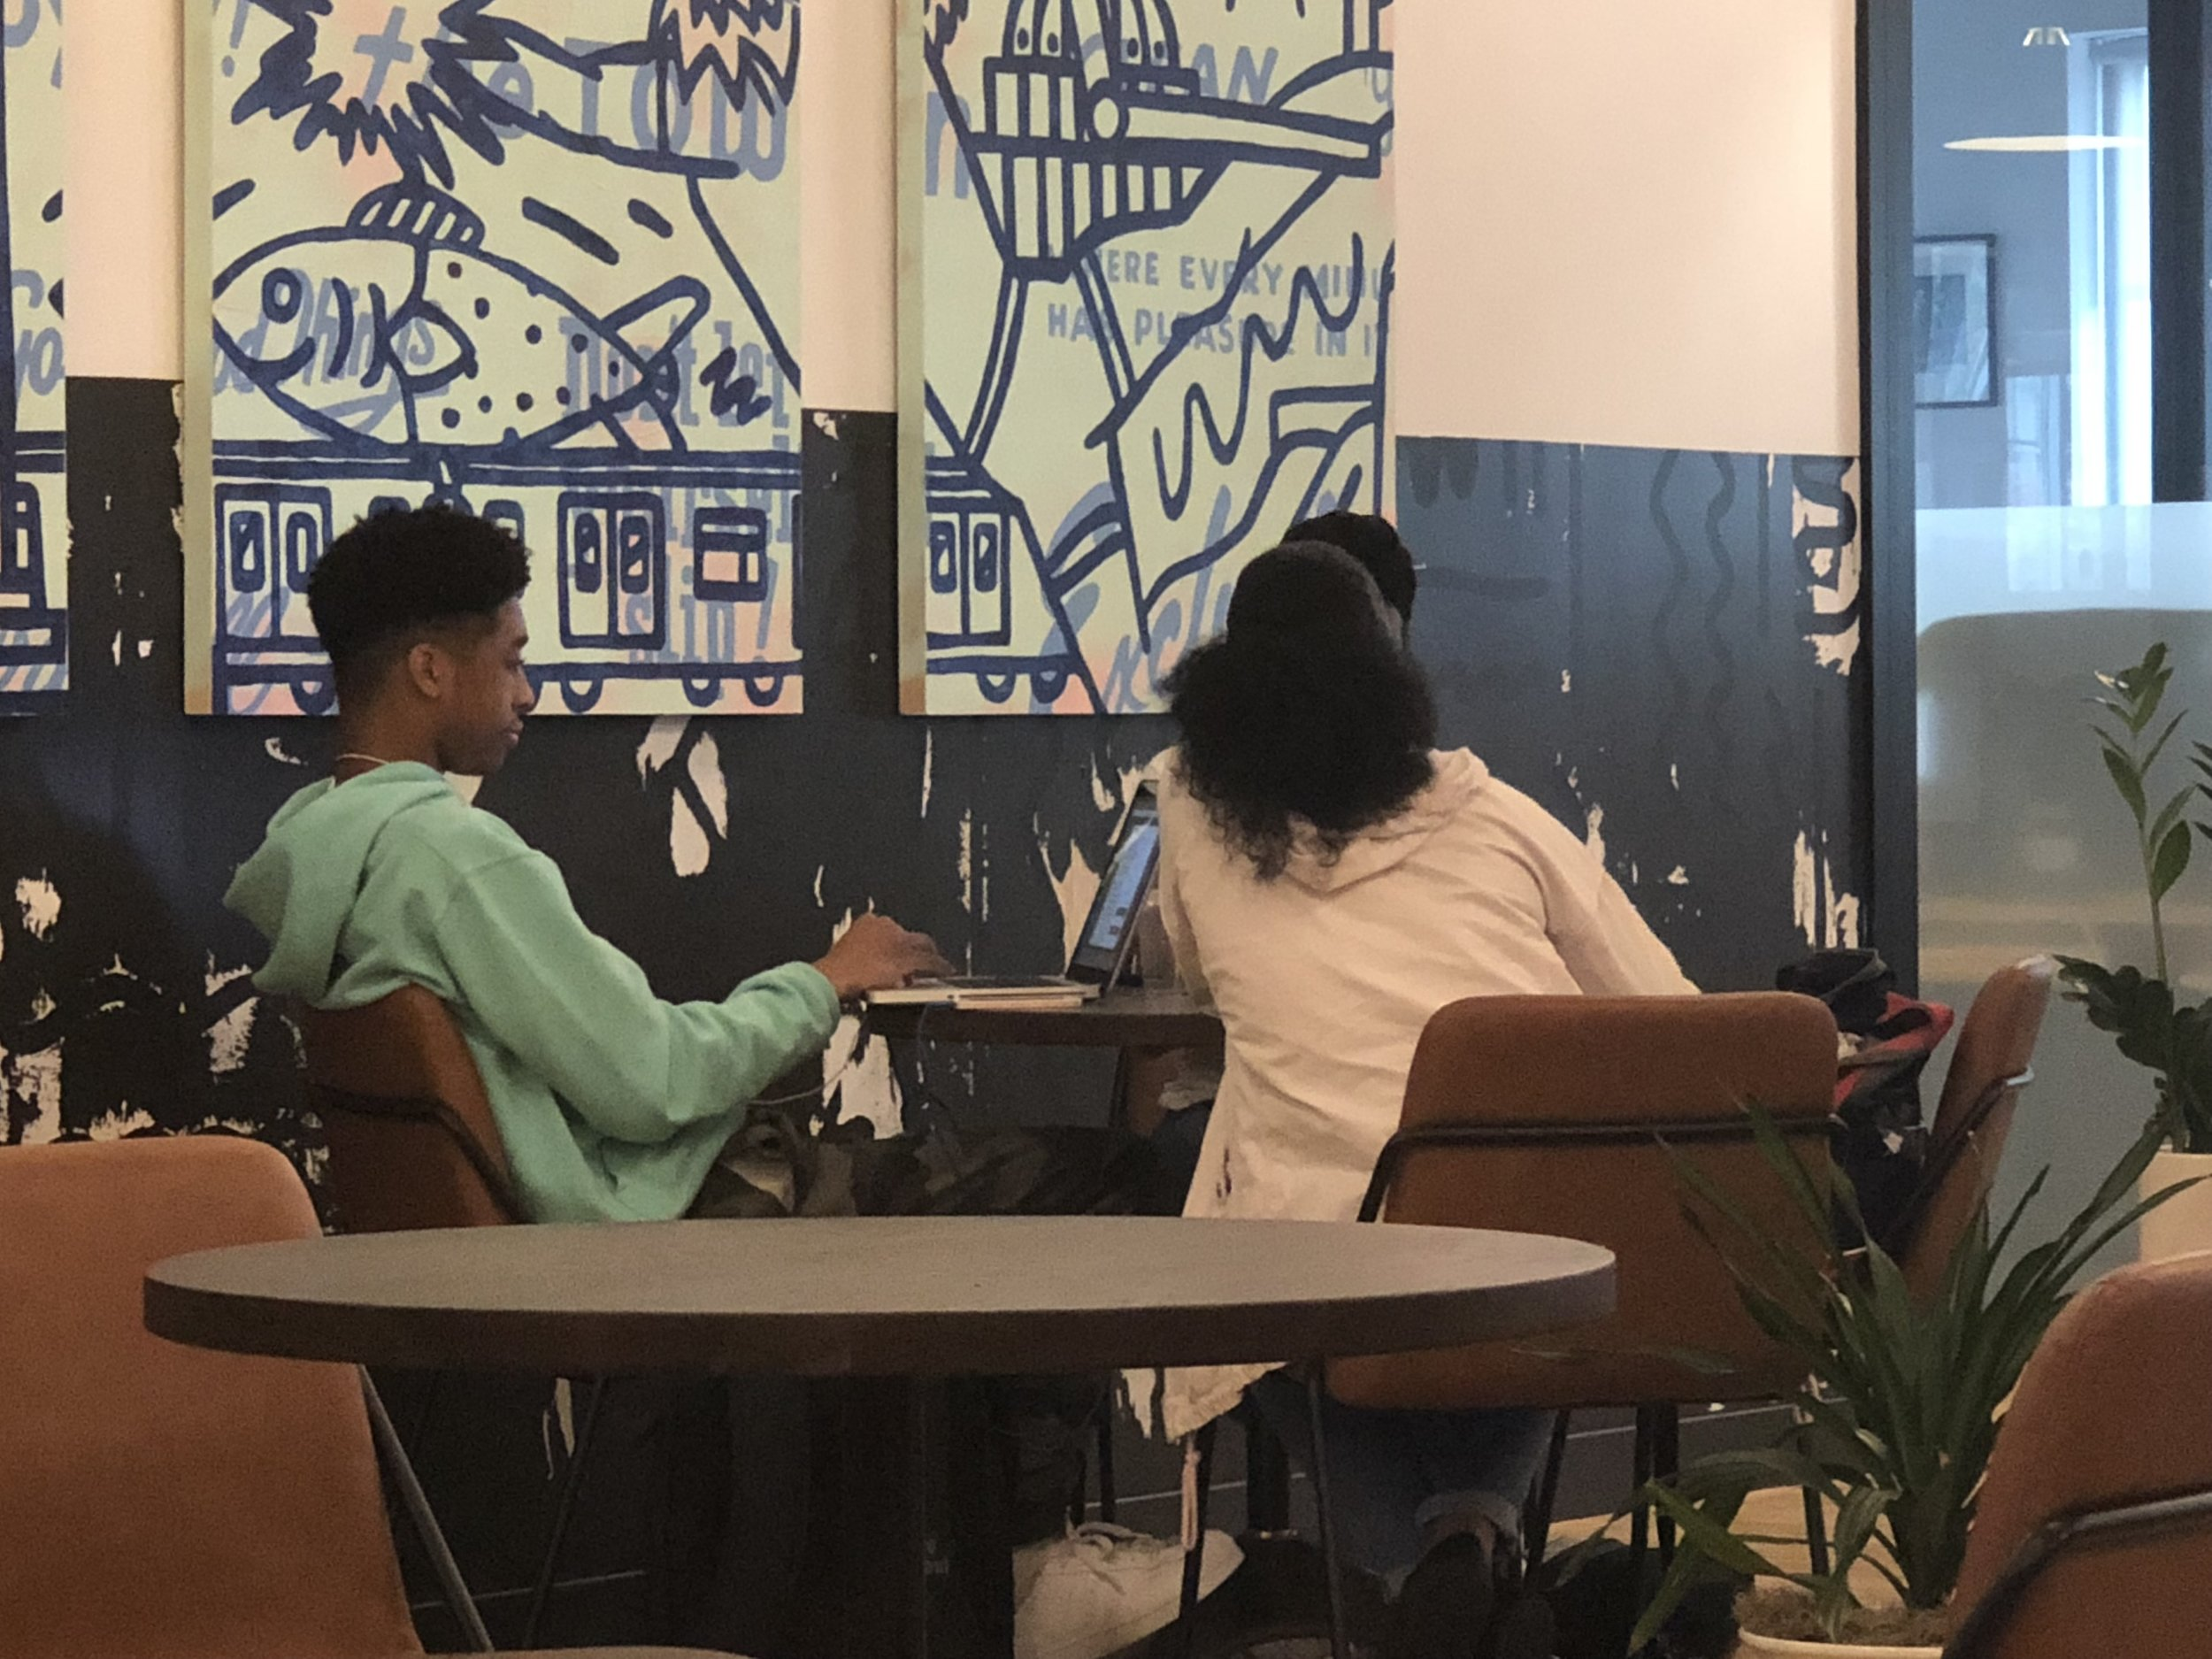 Our Youth Strategists, Brandon Alston and Kayla Boodoo building a project schedule for Technology for Children Africa in WeWork.